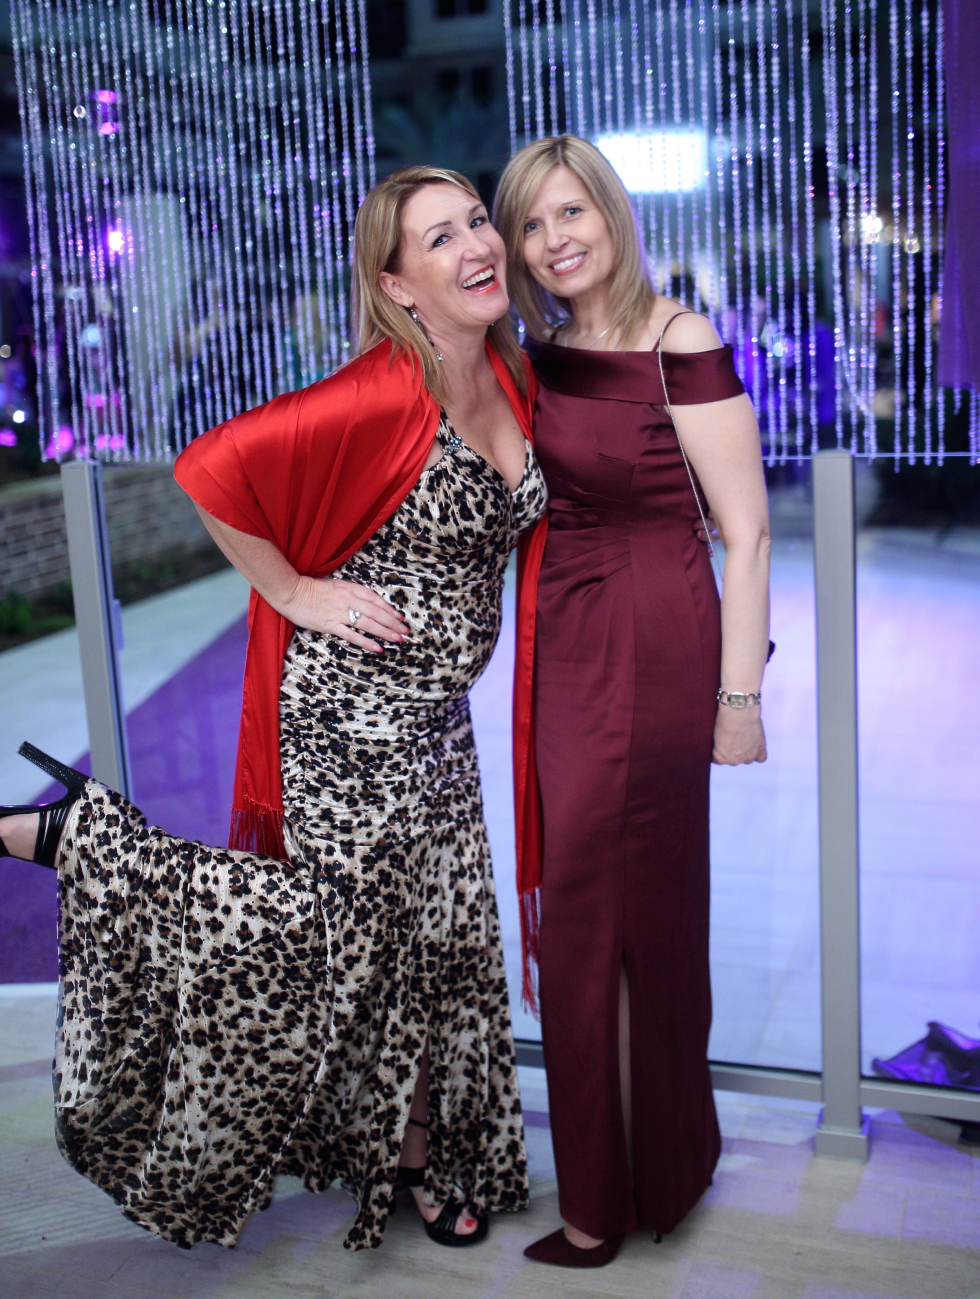 Houston, Big Brothers Big Sisters YP The Big Prom, Feb 2017, Rozi Turnbull, Ellie Ronciman